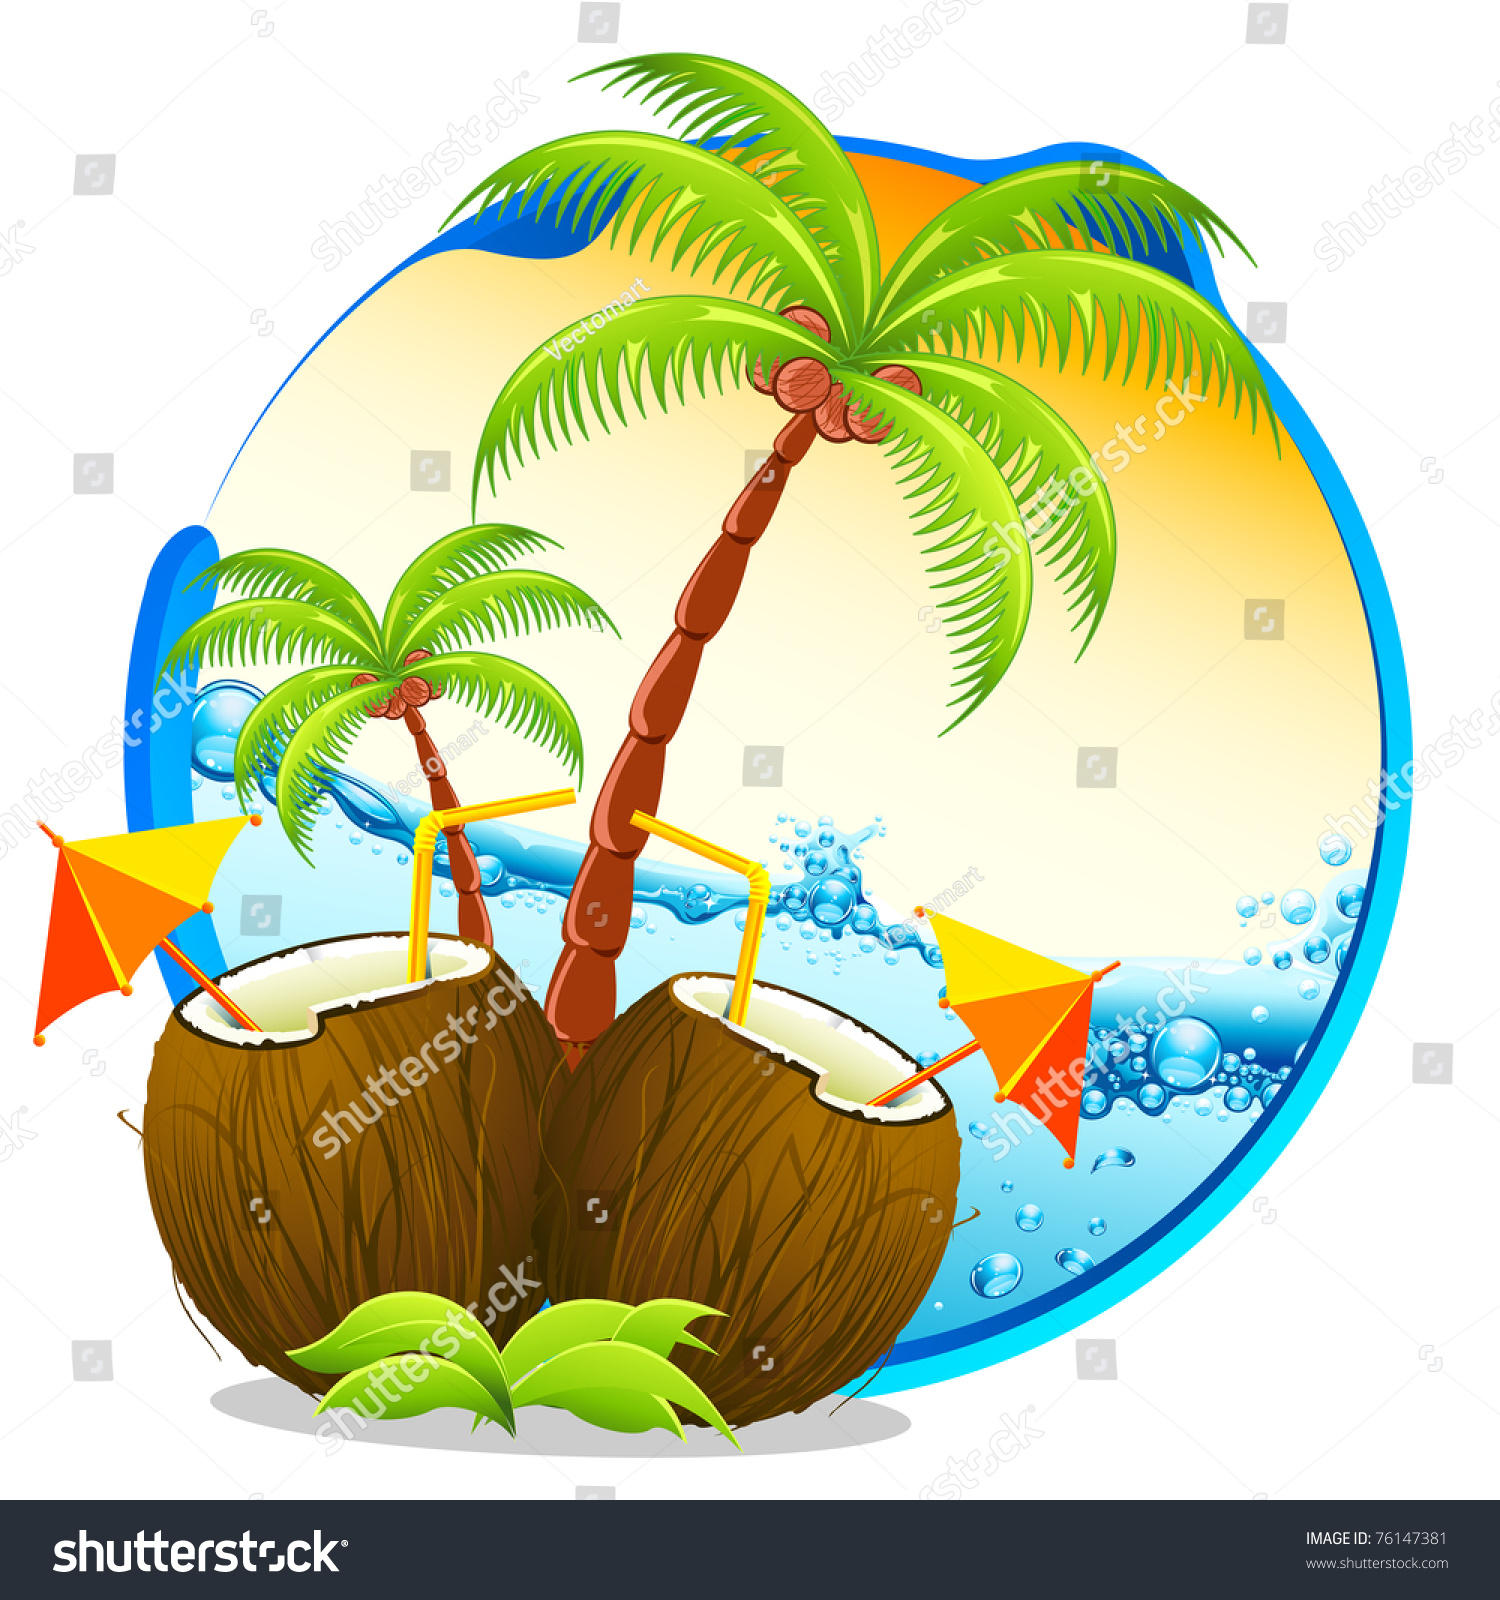 clipart caribbean islands - photo #23